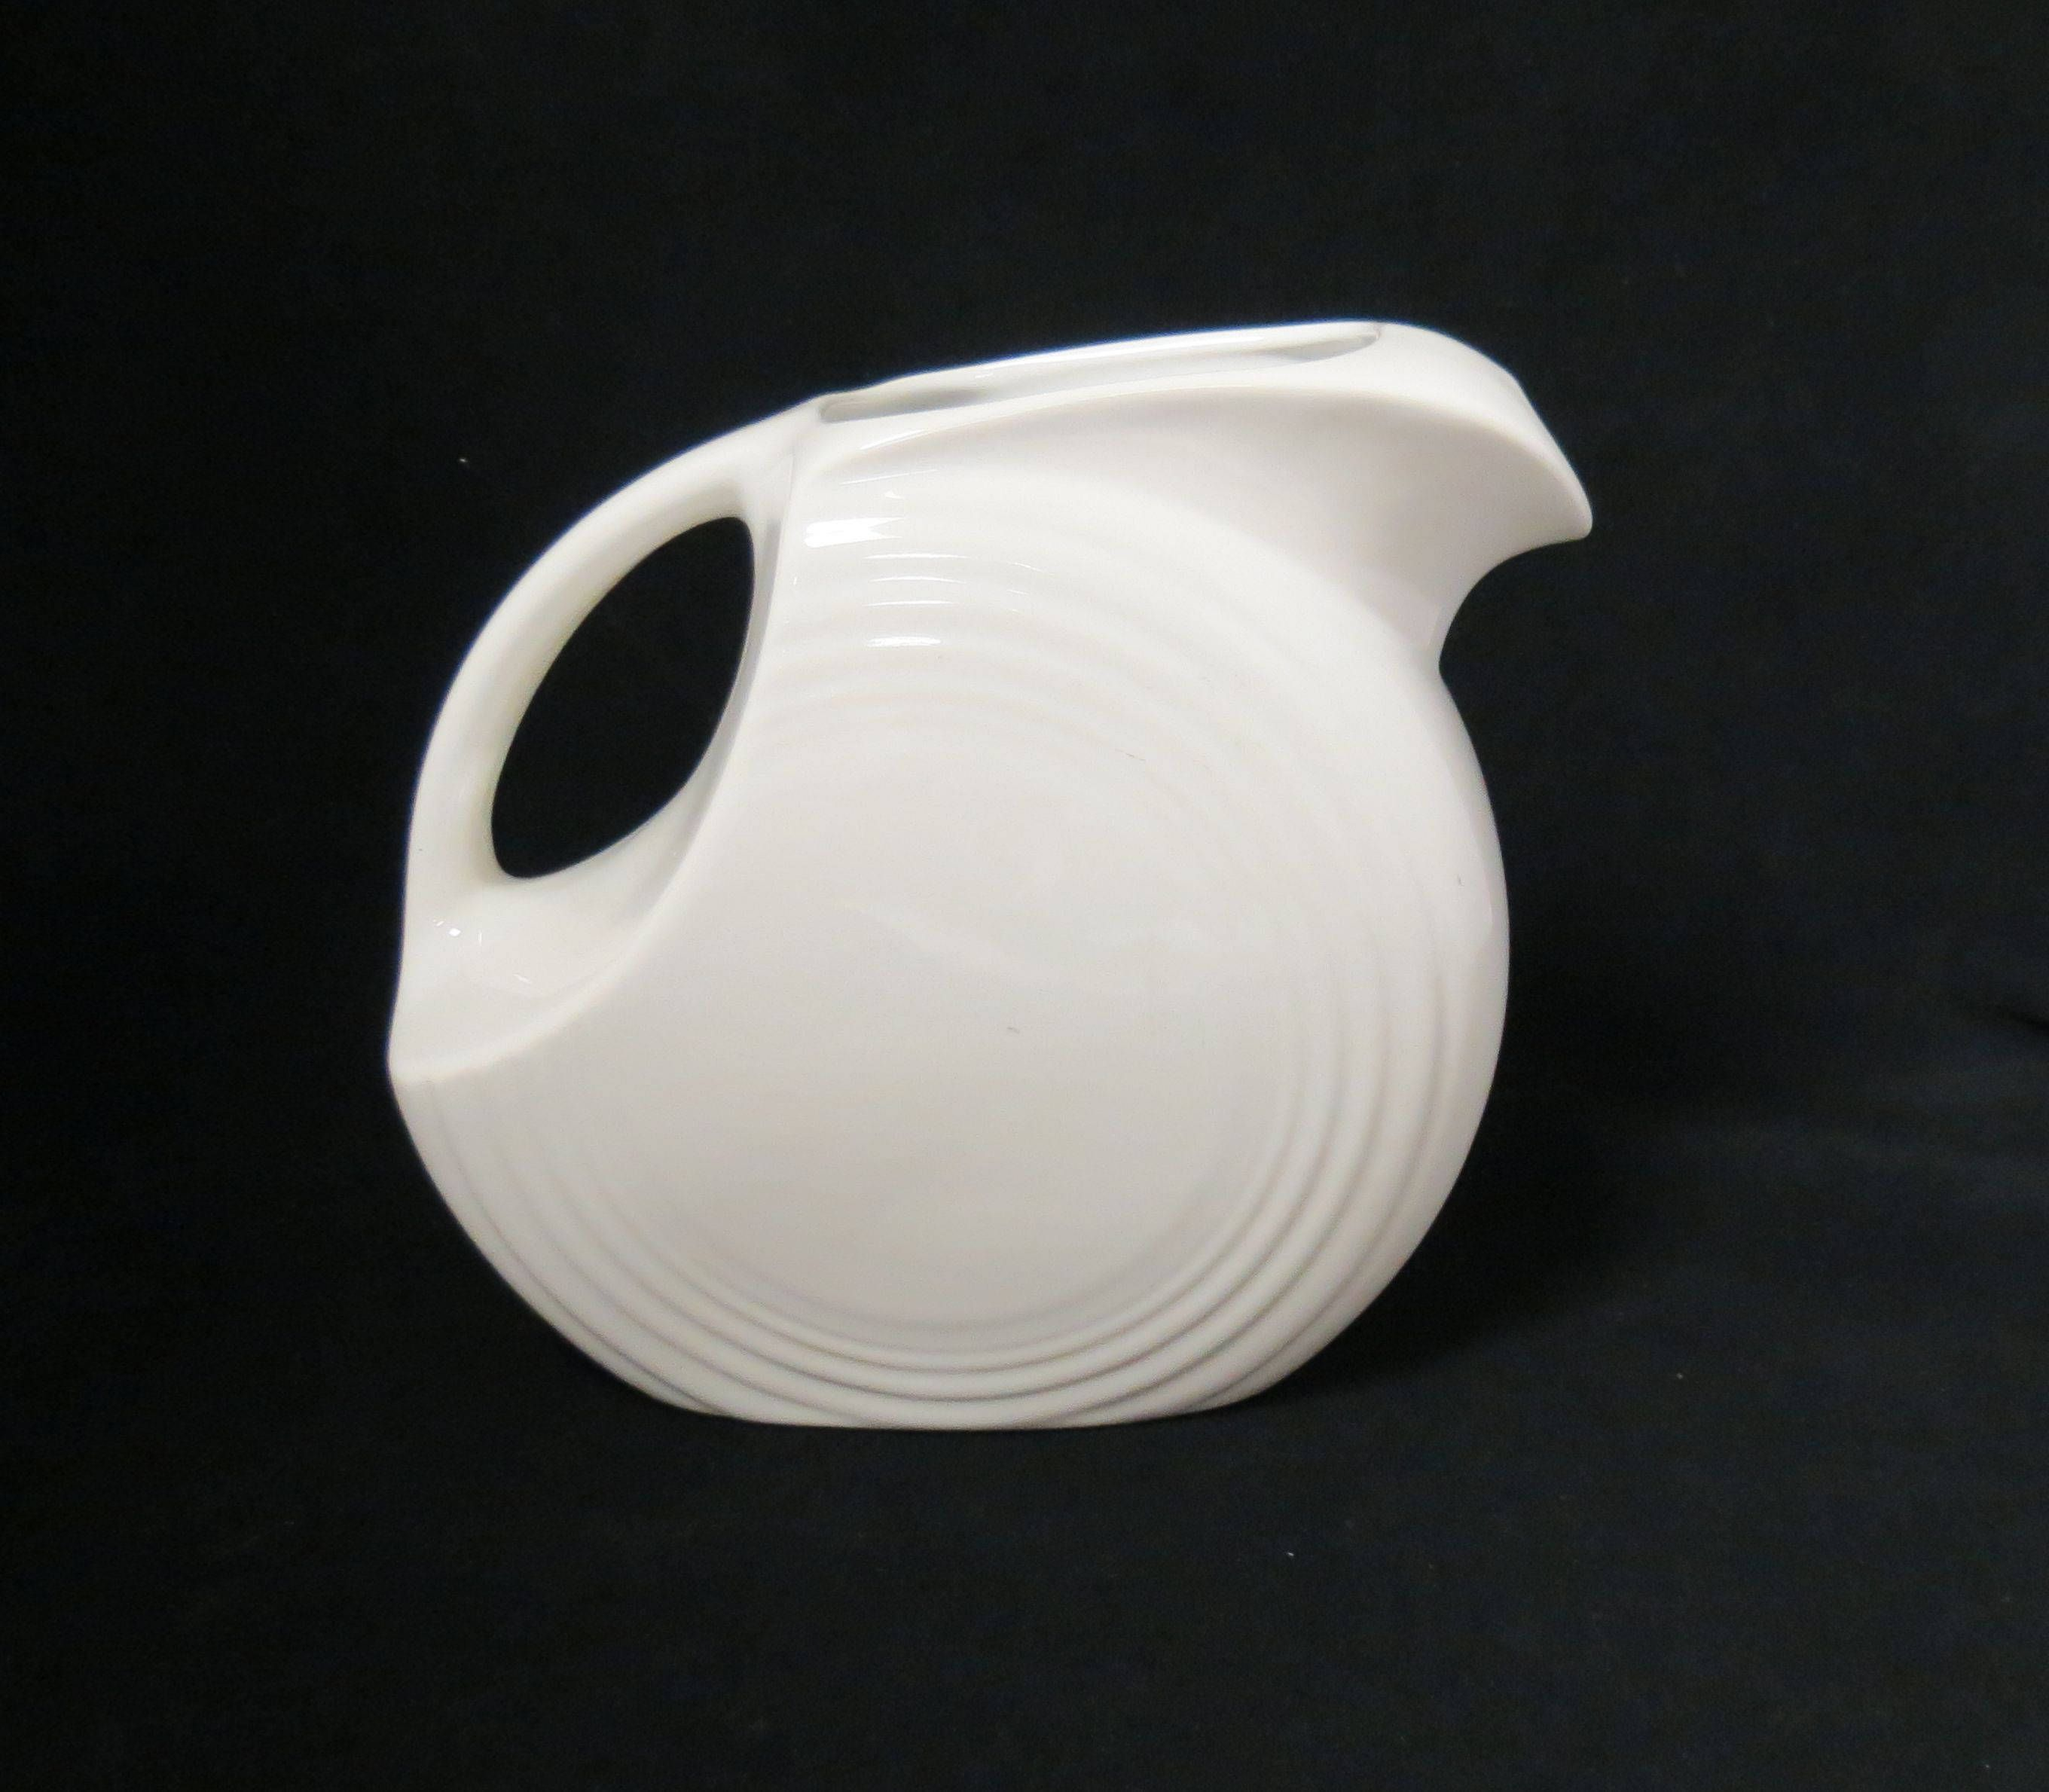 Vintage Fiestaware Fiesta Pitcher White Homer Laughlin Kitchen Ware Kitchenware #kitchenware